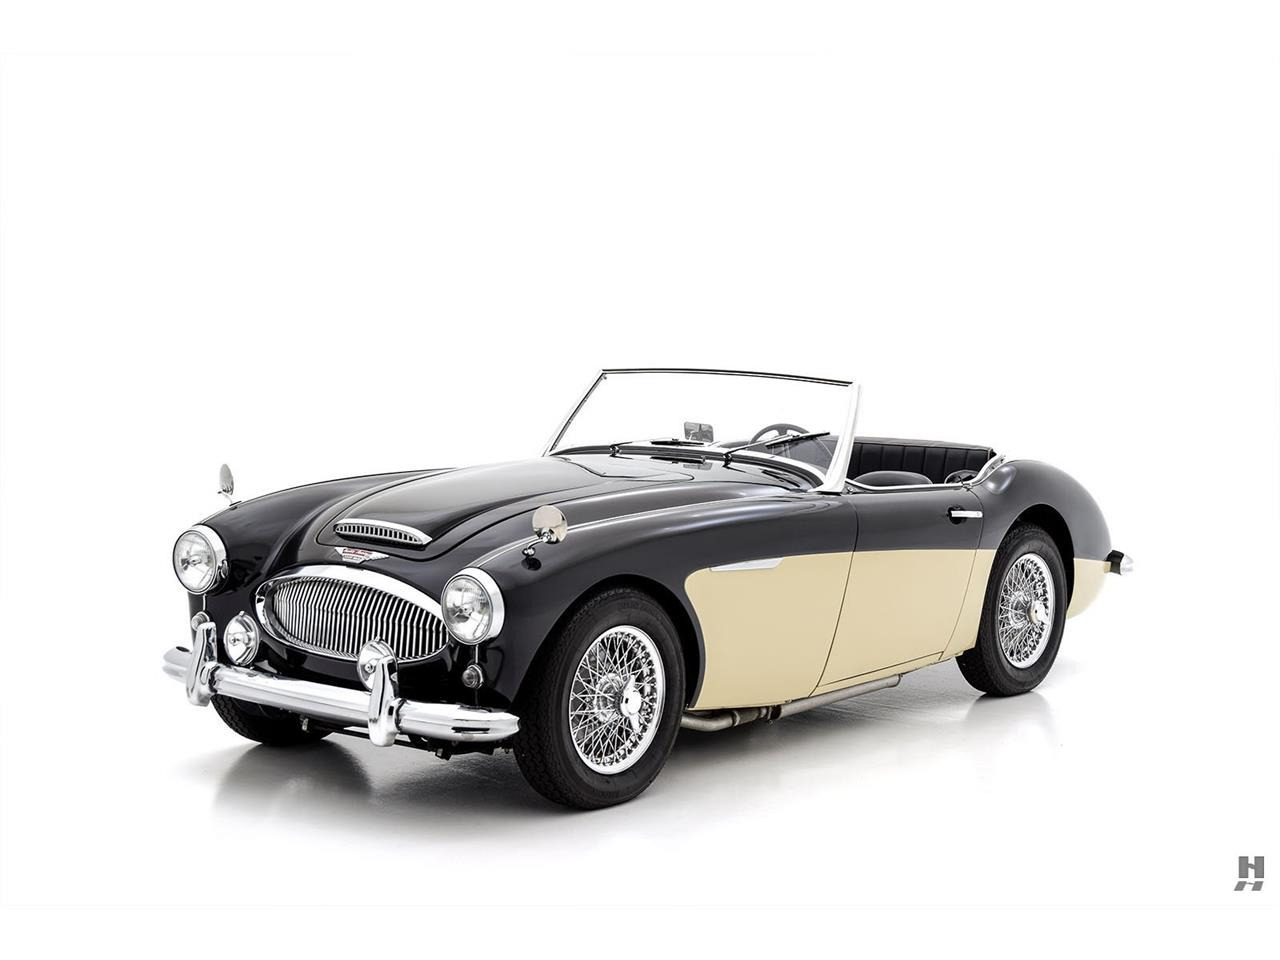 1962 Austin-Healey 3000 Mark II (CC-1151648) for sale in Saint Louis, Missouri